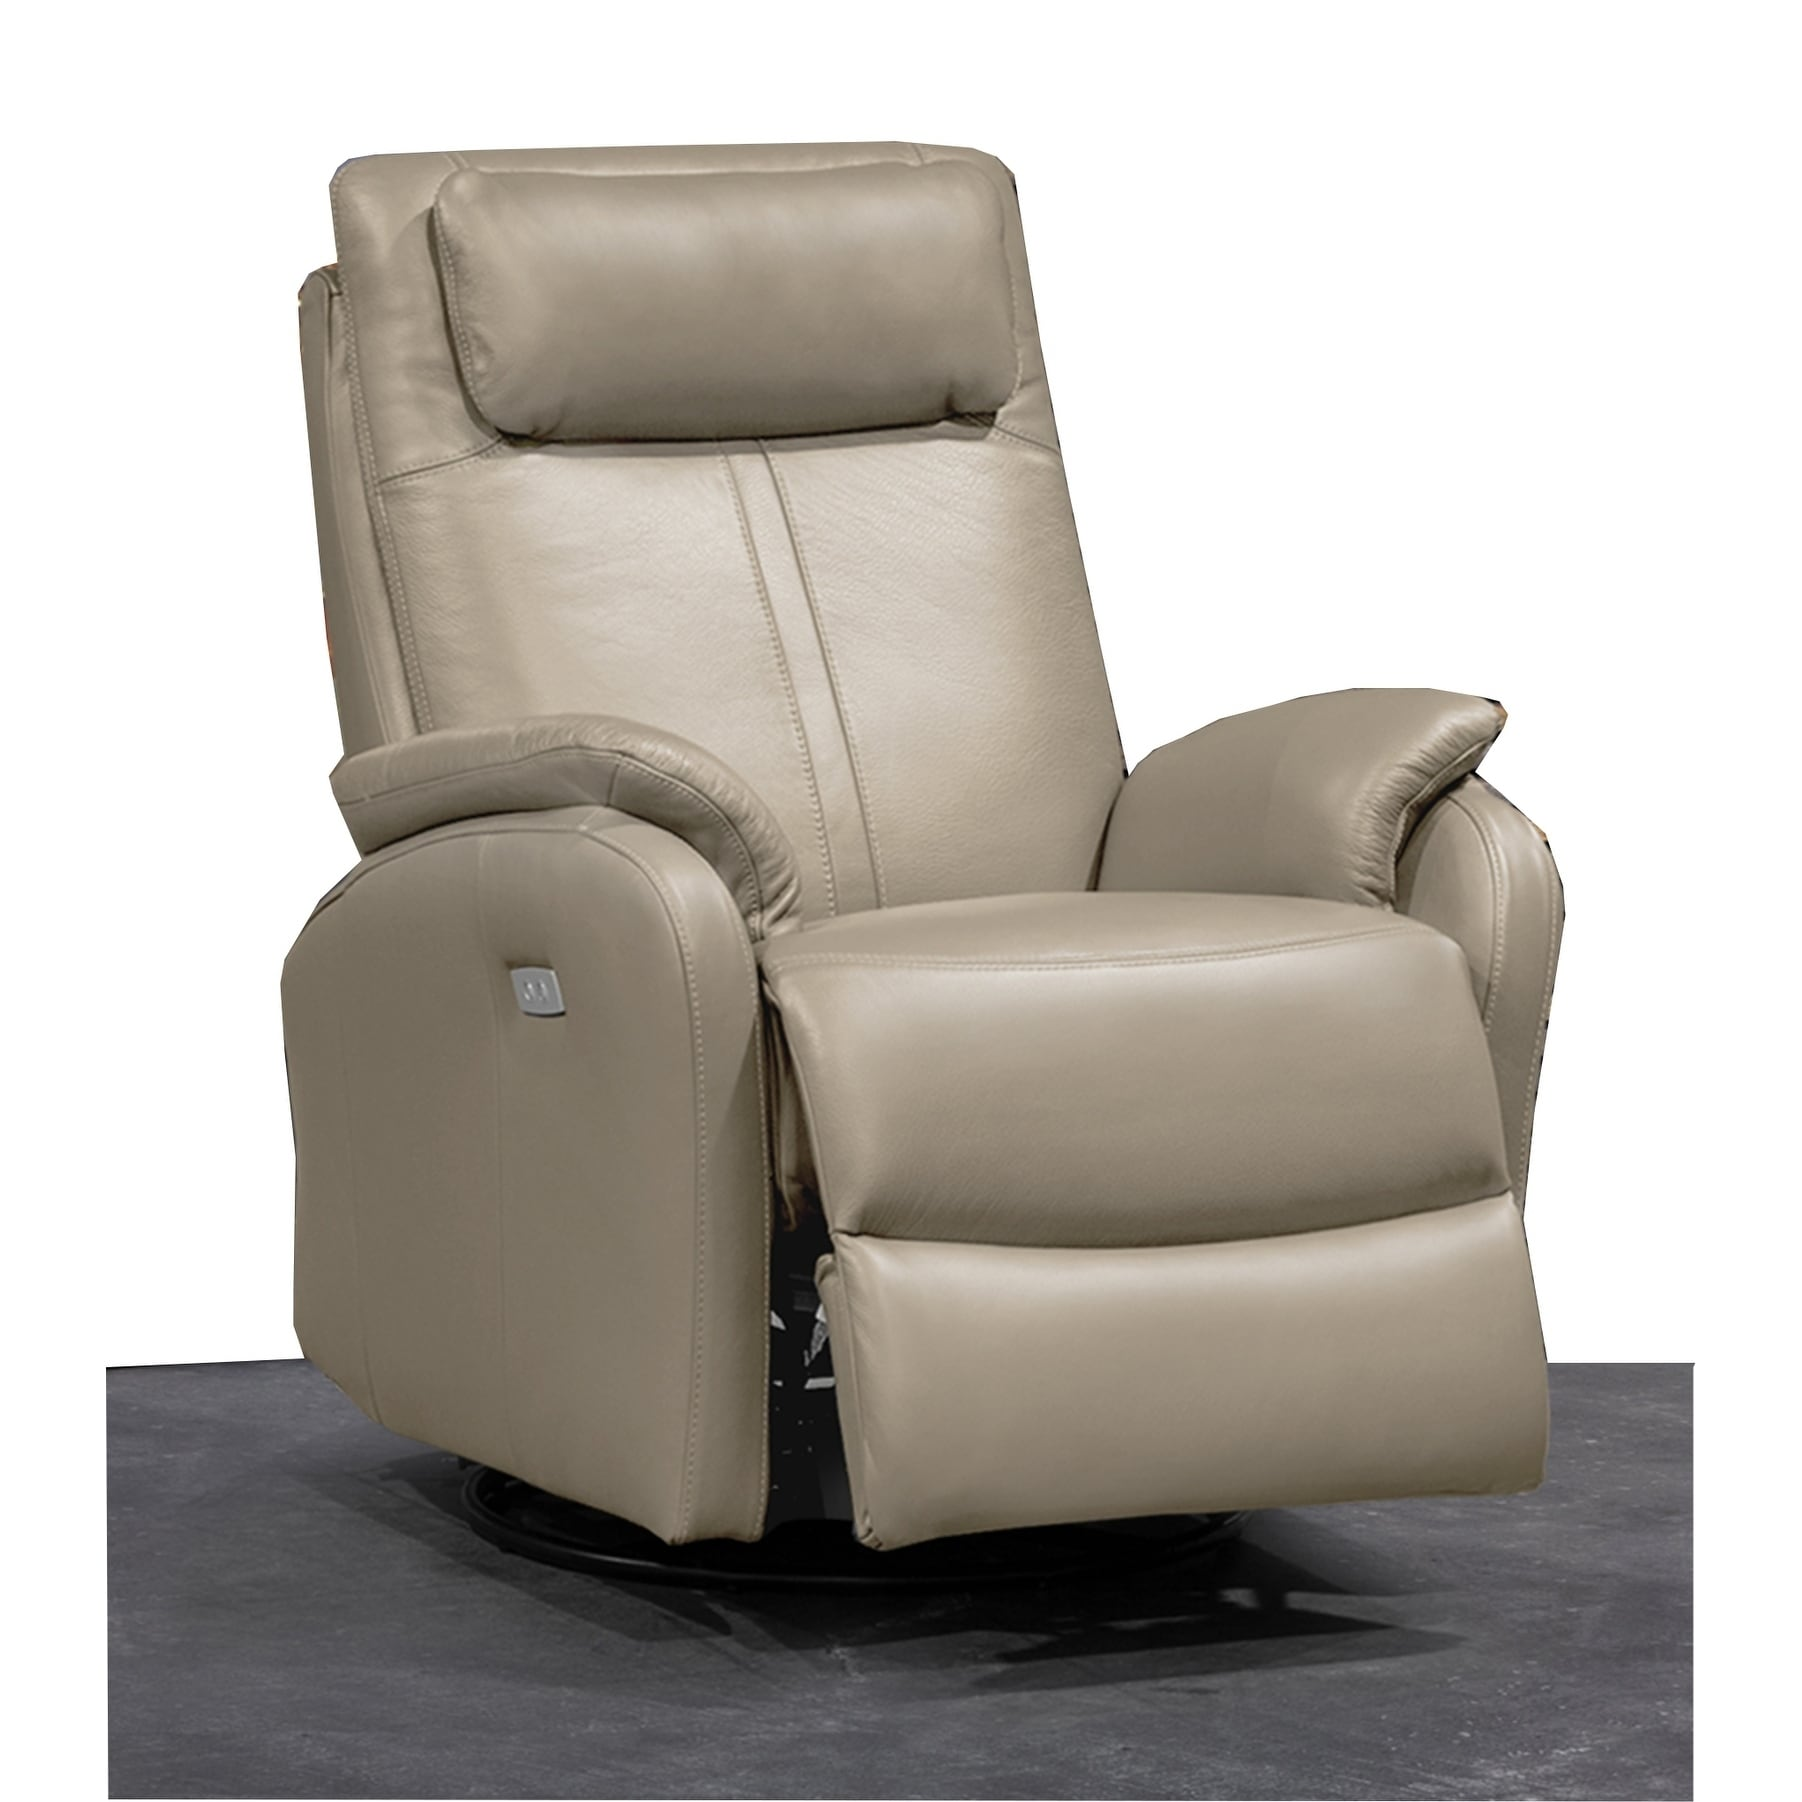 Swivel Rocker Recliner Chair Thalia Contemporary Leather Power Swivel Rocker Recliner